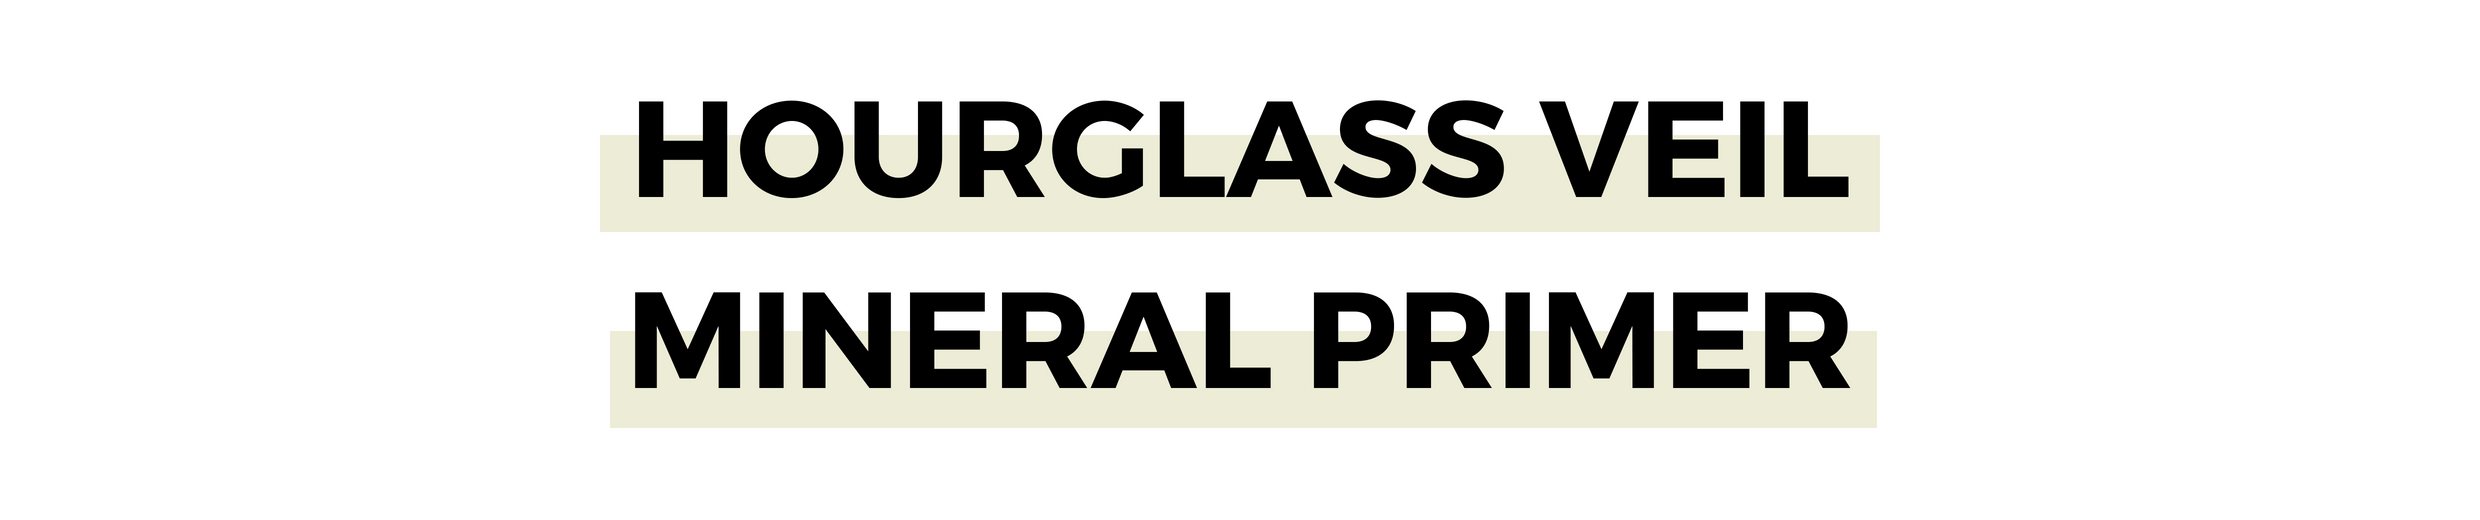 HOURGLASS VEIL MINERAL PRIMER.png